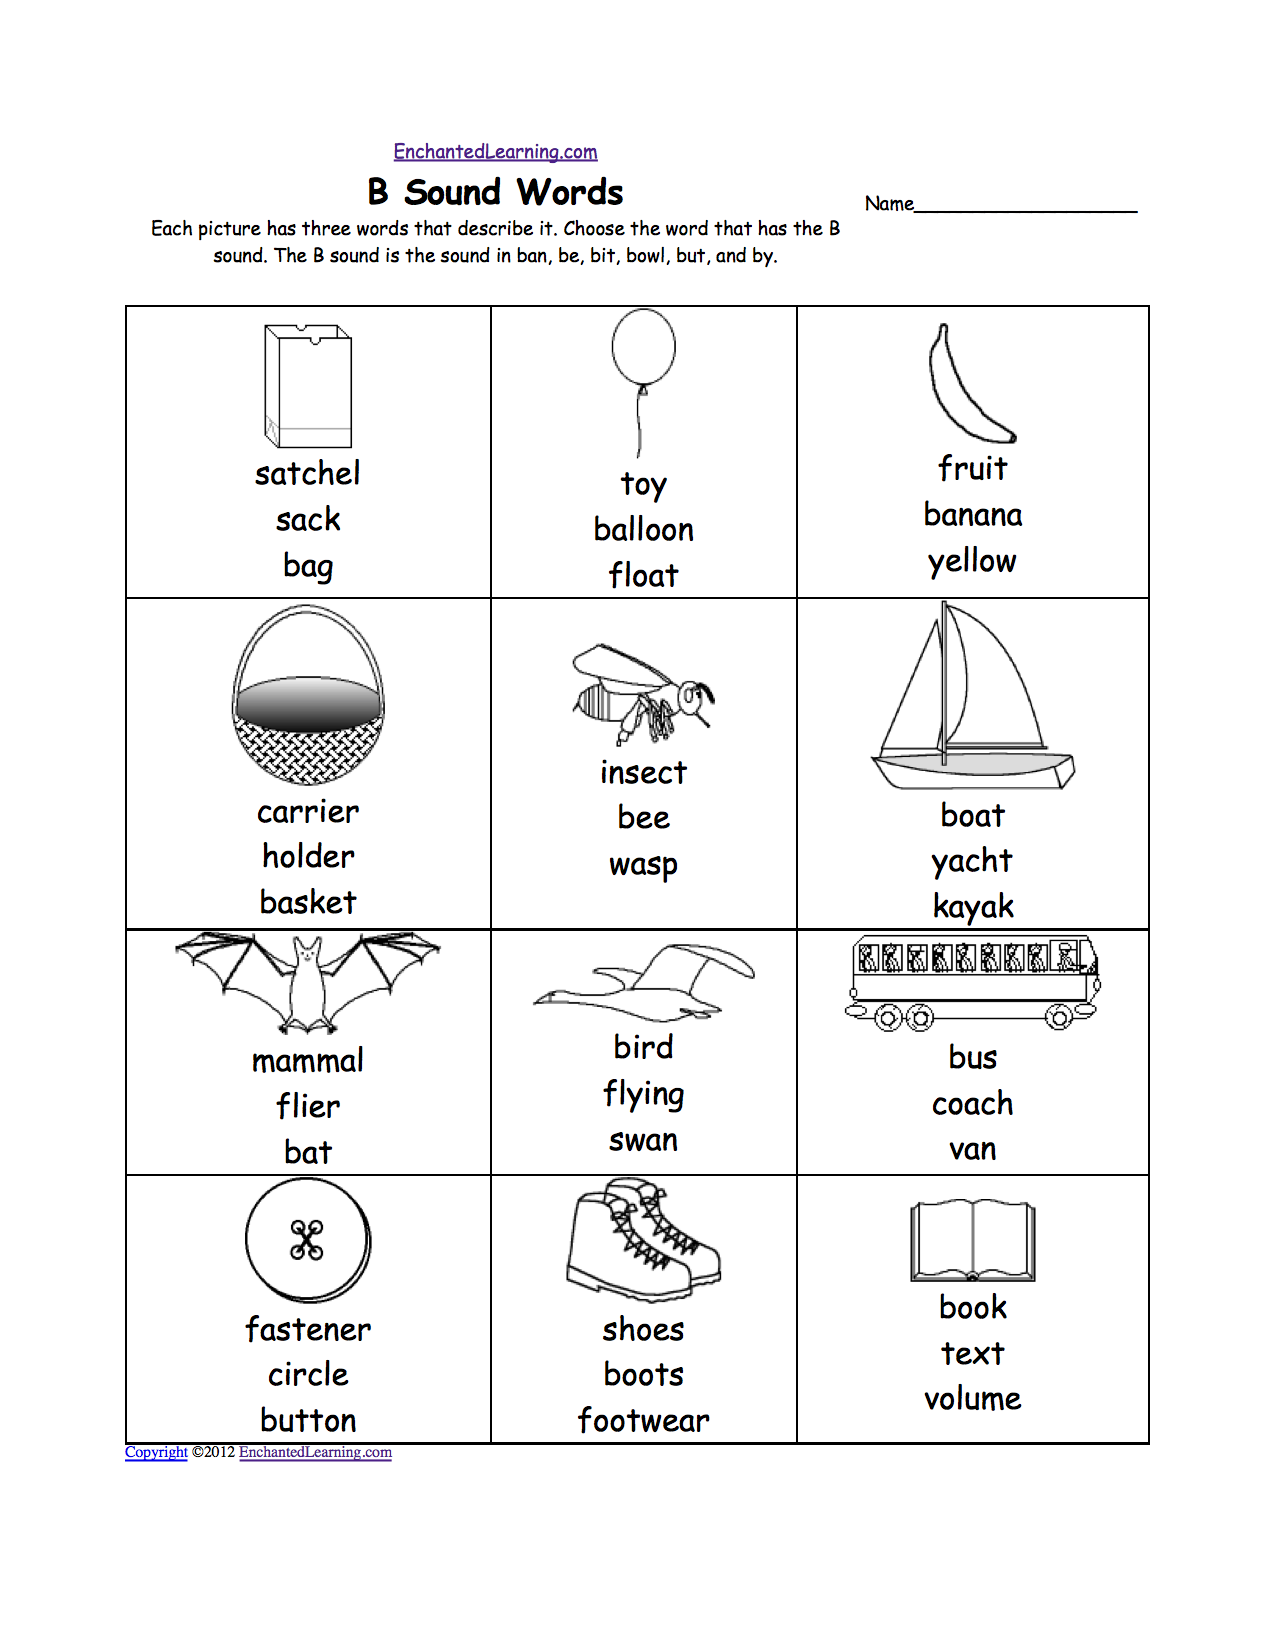 Weirdmailus  Pretty Phonics Worksheets Multiple Choice Worksheets To Print  With Foxy Quotbquot Sound Phonics Worksheet Multiple Choice Each Picture Has Three Words That Describe It Choose The Word That Has A Quotbquot Sound The Quotbquot Sound Is The Sound  With Amazing Mohs Hardness Scale Worksheet Also Mitosis Coloring Worksheet In Addition America The Story Of Us Worksheet Answers And Point Of Concurrency Worksheet As Well As Exercise Worksheets Additionally America The Story Of Us Episode  Bust Worksheet Answers From Enchantedlearningcom With Weirdmailus  Foxy Phonics Worksheets Multiple Choice Worksheets To Print  With Amazing Quotbquot Sound Phonics Worksheet Multiple Choice Each Picture Has Three Words That Describe It Choose The Word That Has A Quotbquot Sound The Quotbquot Sound Is The Sound  And Pretty Mohs Hardness Scale Worksheet Also Mitosis Coloring Worksheet In Addition America The Story Of Us Worksheet Answers From Enchantedlearningcom